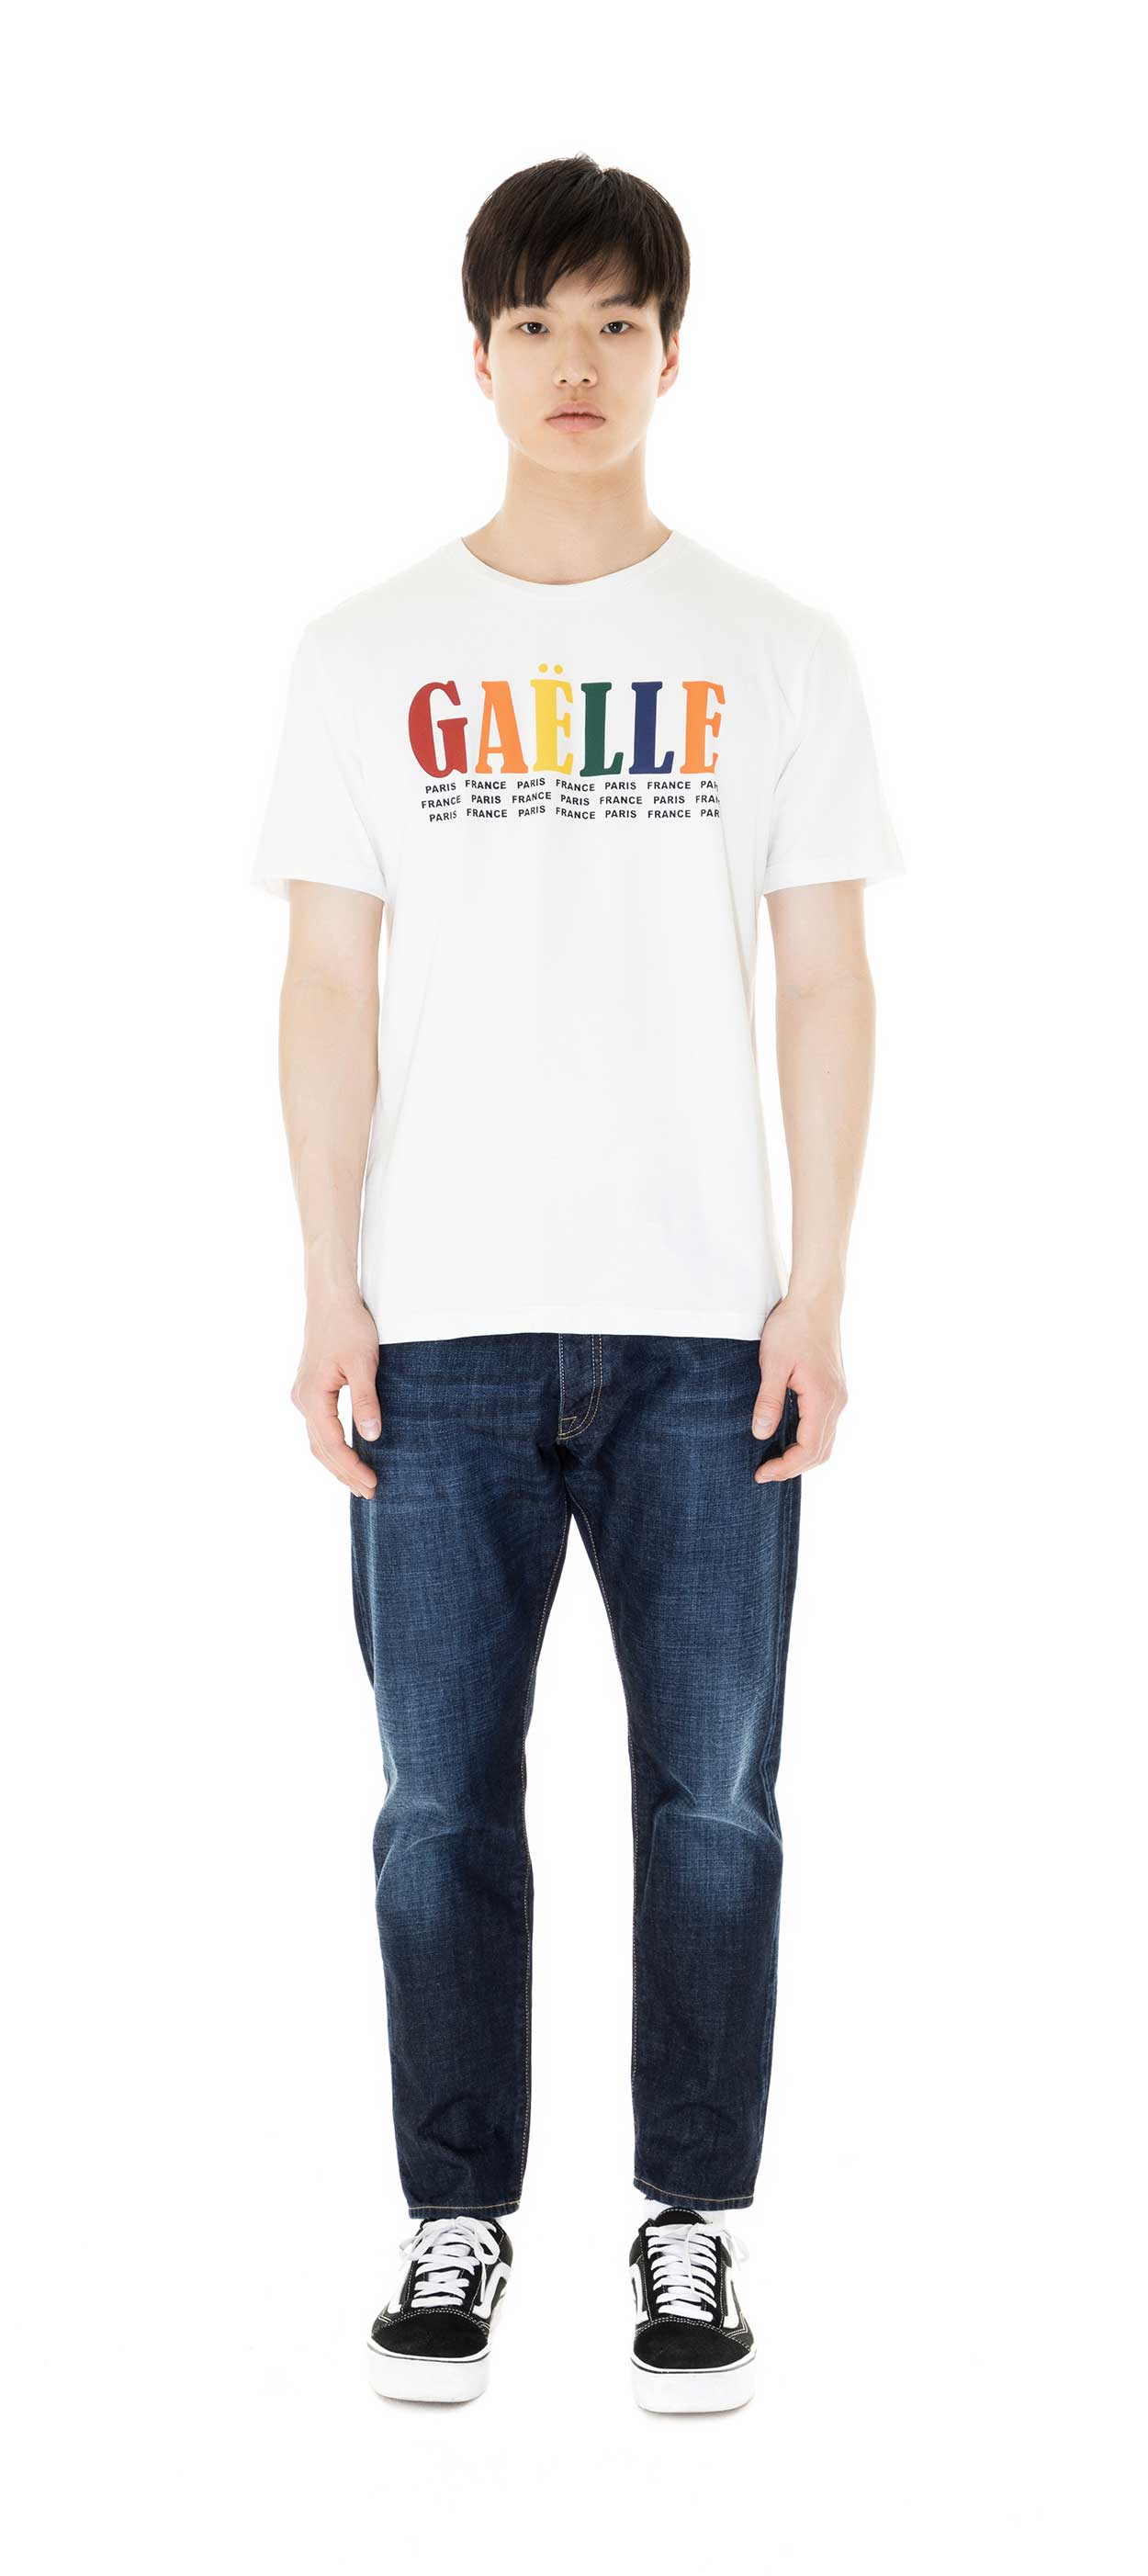 T-SHIRT - GBU2371 - GAELLE PARIS